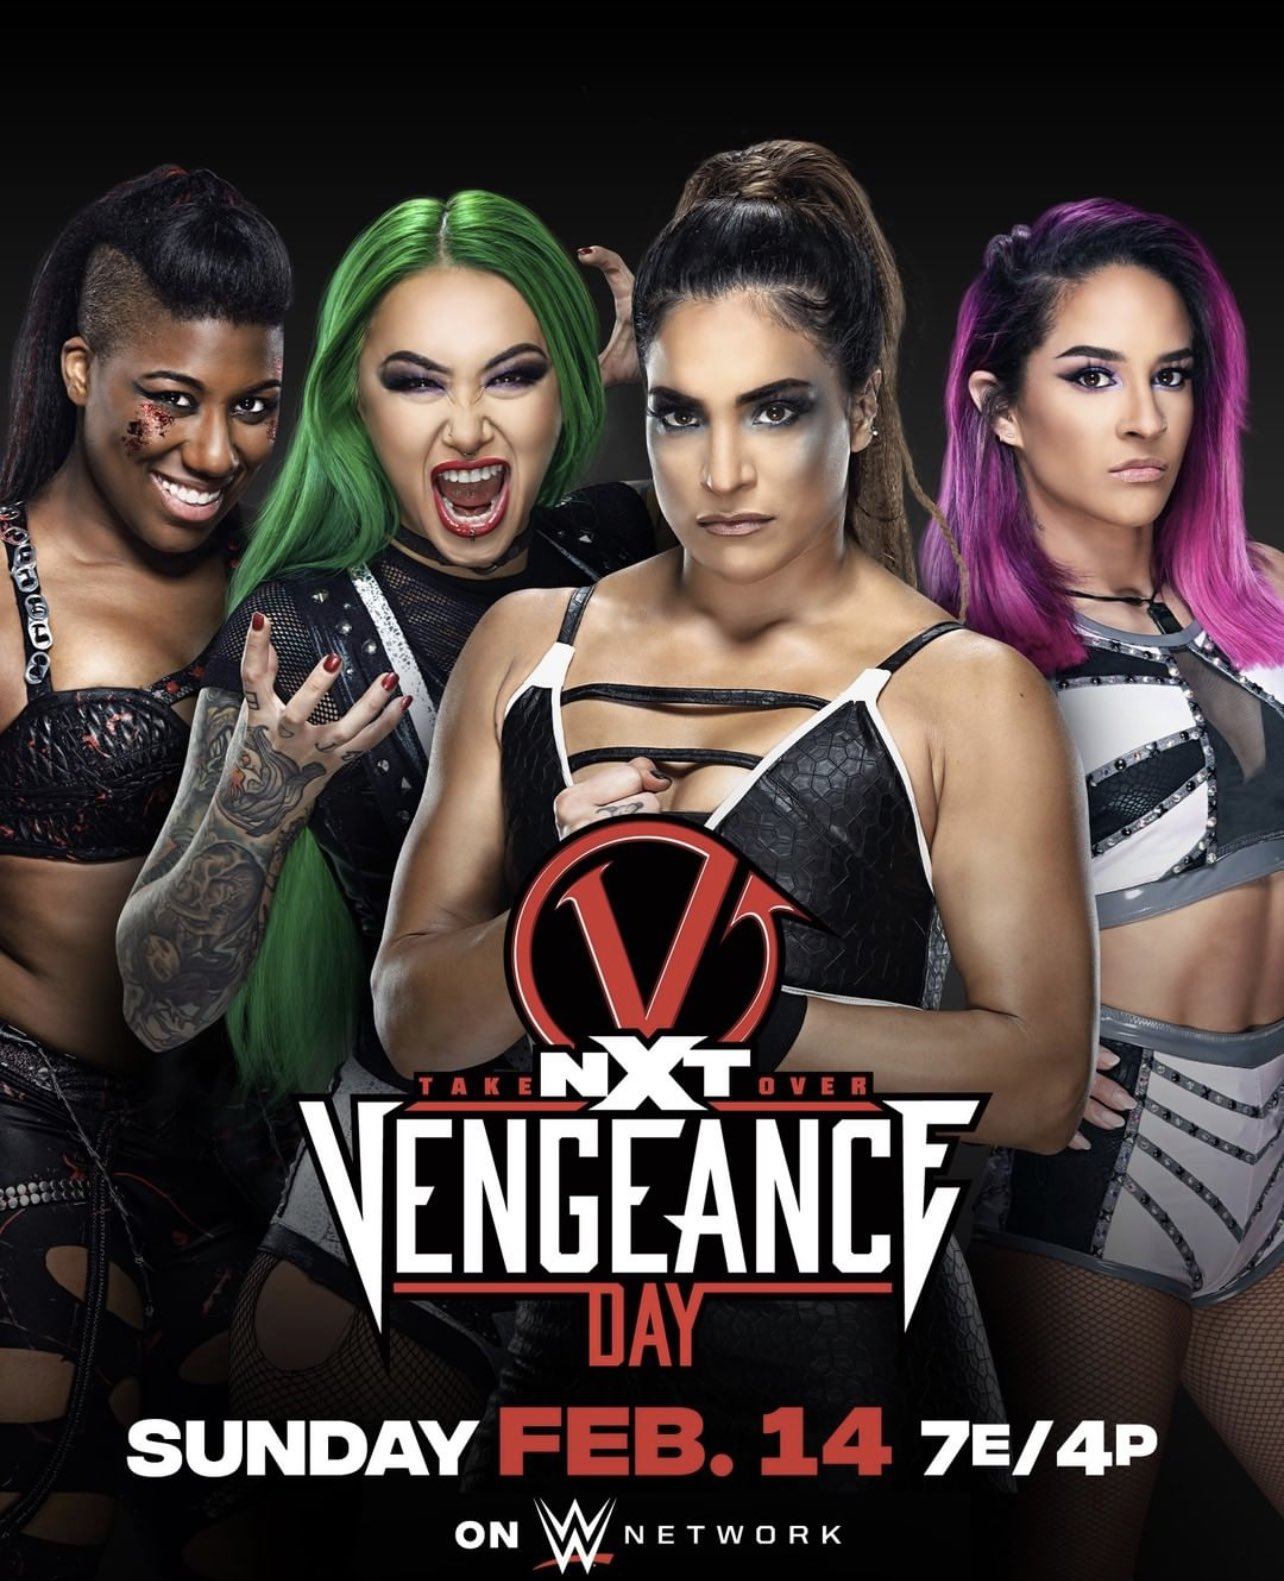 WWE NXT TakeOver Vengeance Day 2021 English HDTV 500MB Download